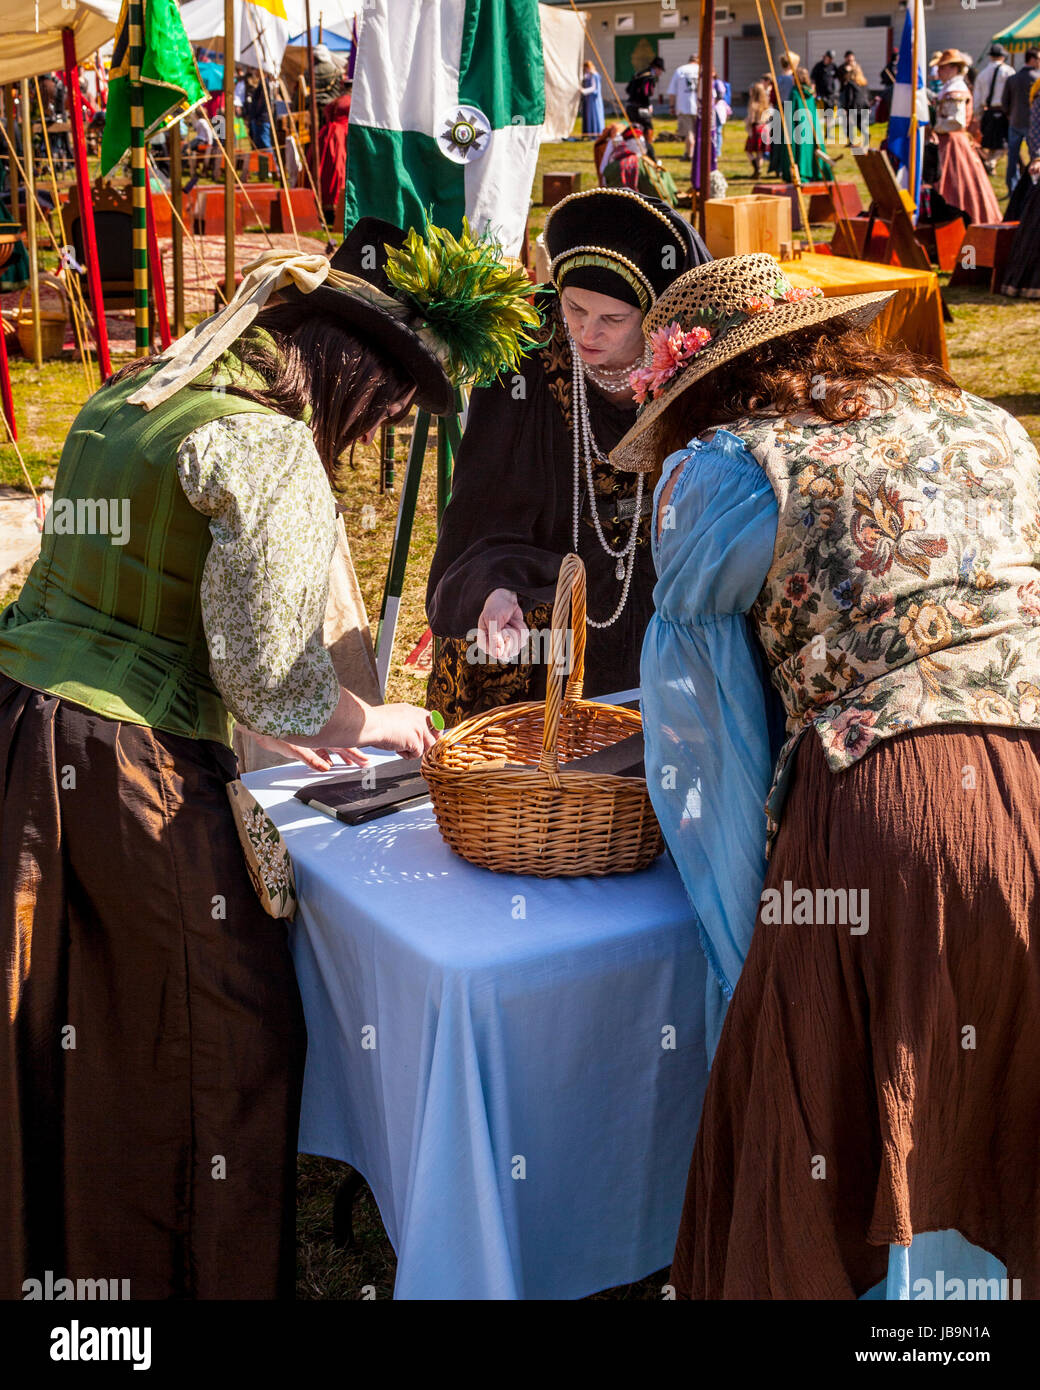 scenes-from-the-sonora-california-celtic-faire-in-2011-JB9N1A.jpg